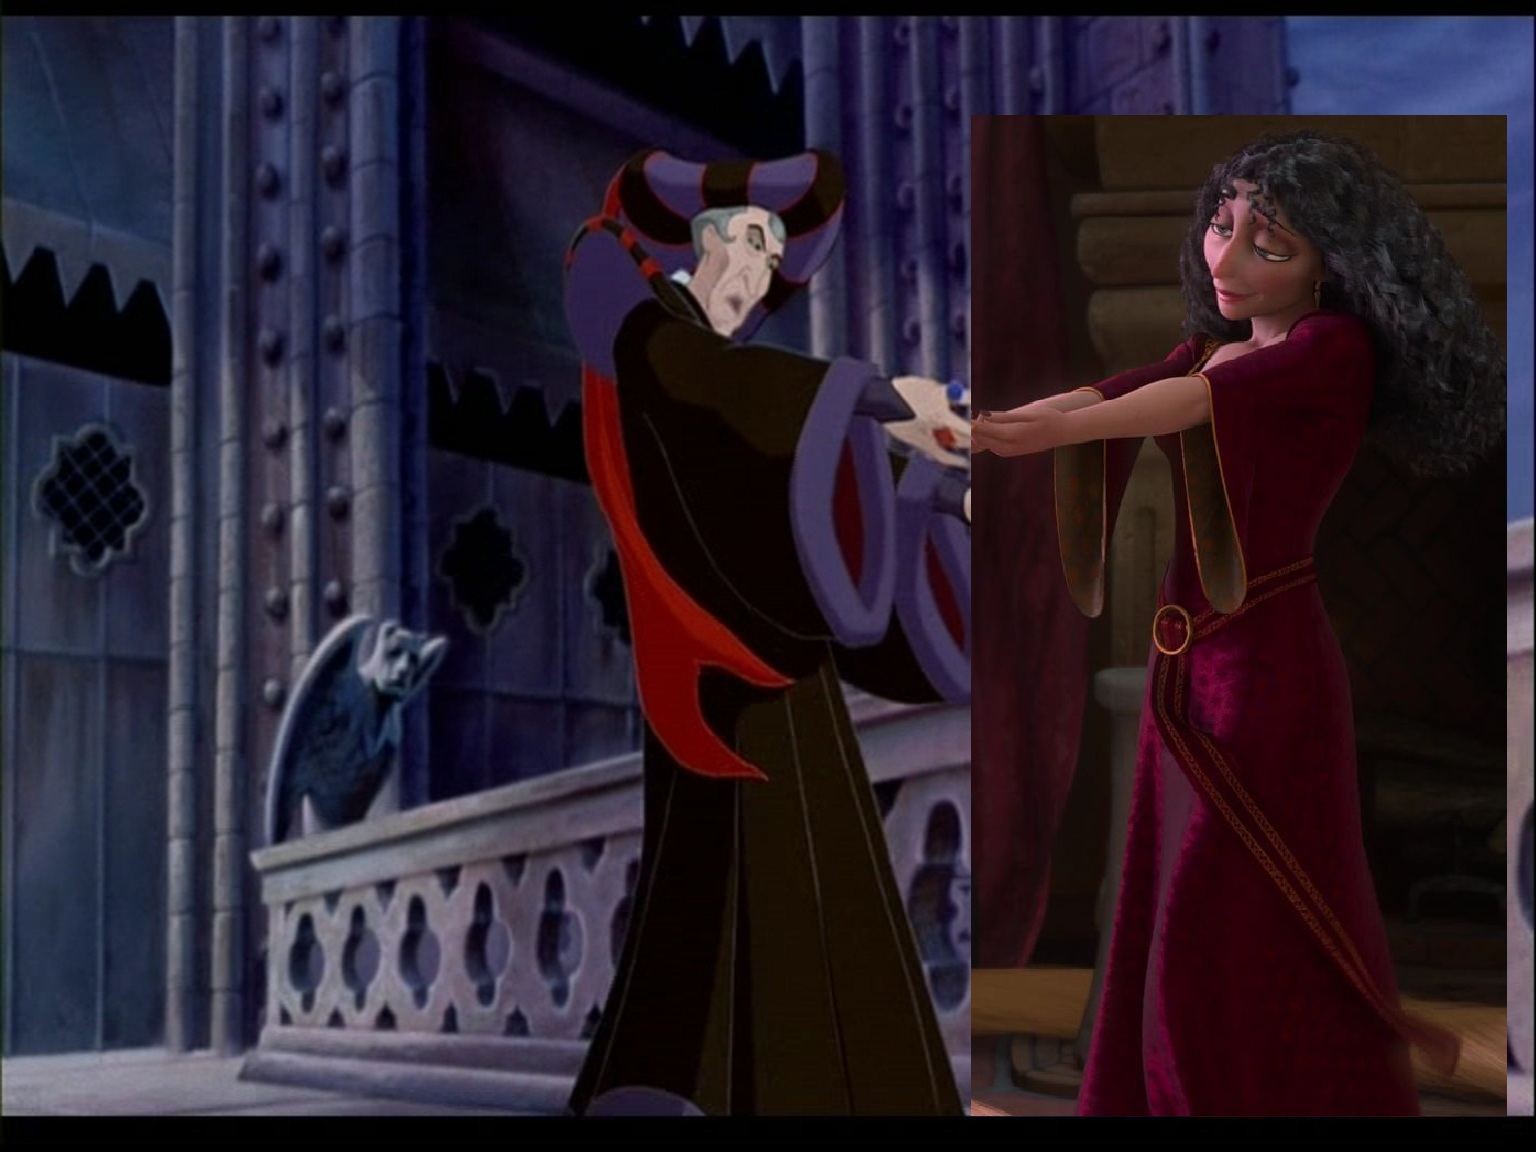 Tattoo Girl Hd Wallpaper Download Frollo And Gothel Images Frollo Amp Gothel Holding Hands Hd